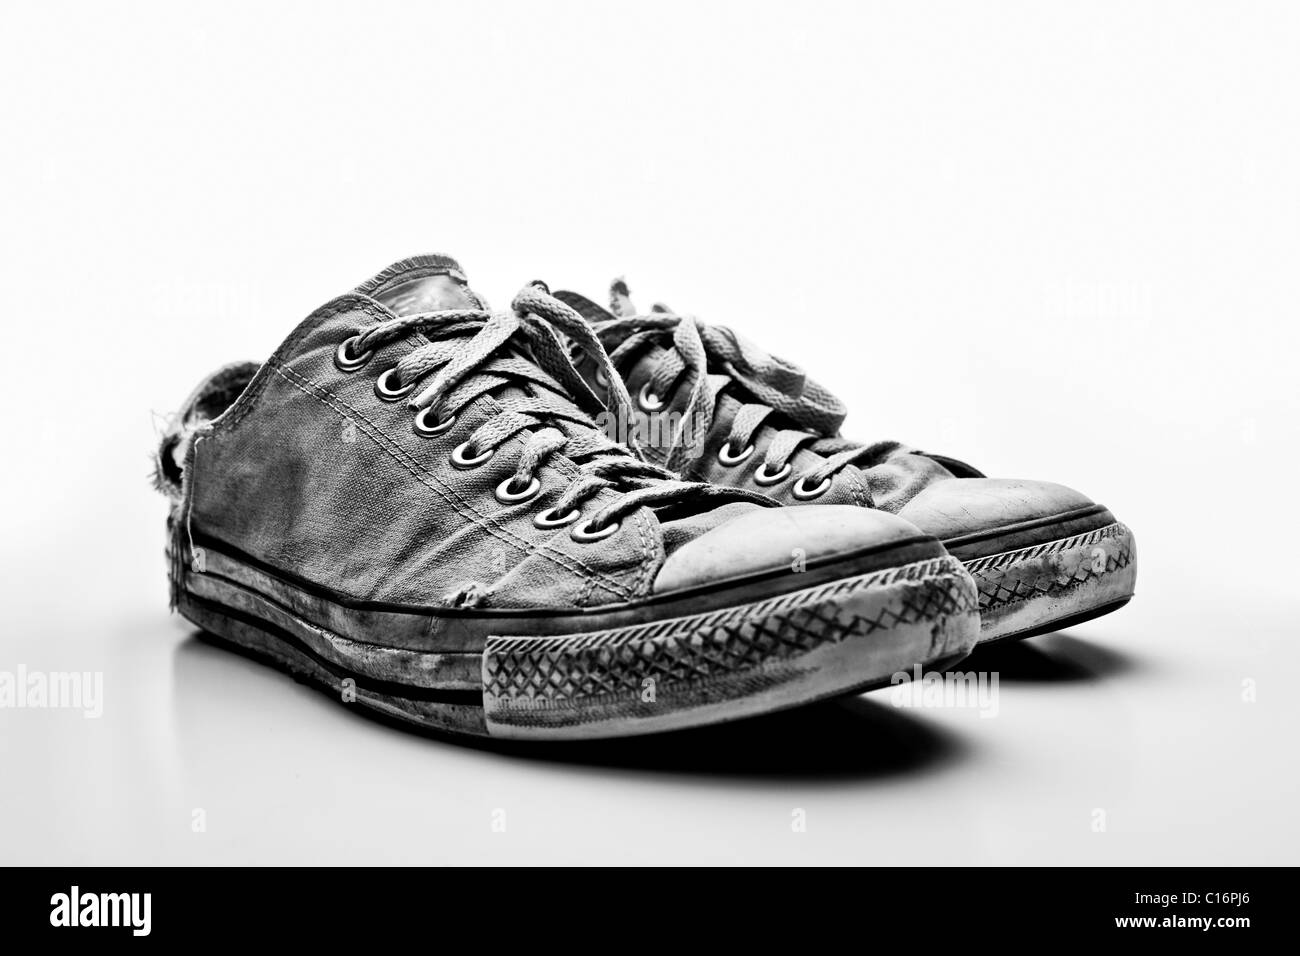 A pair of Converse All Star shoes - Stock Image